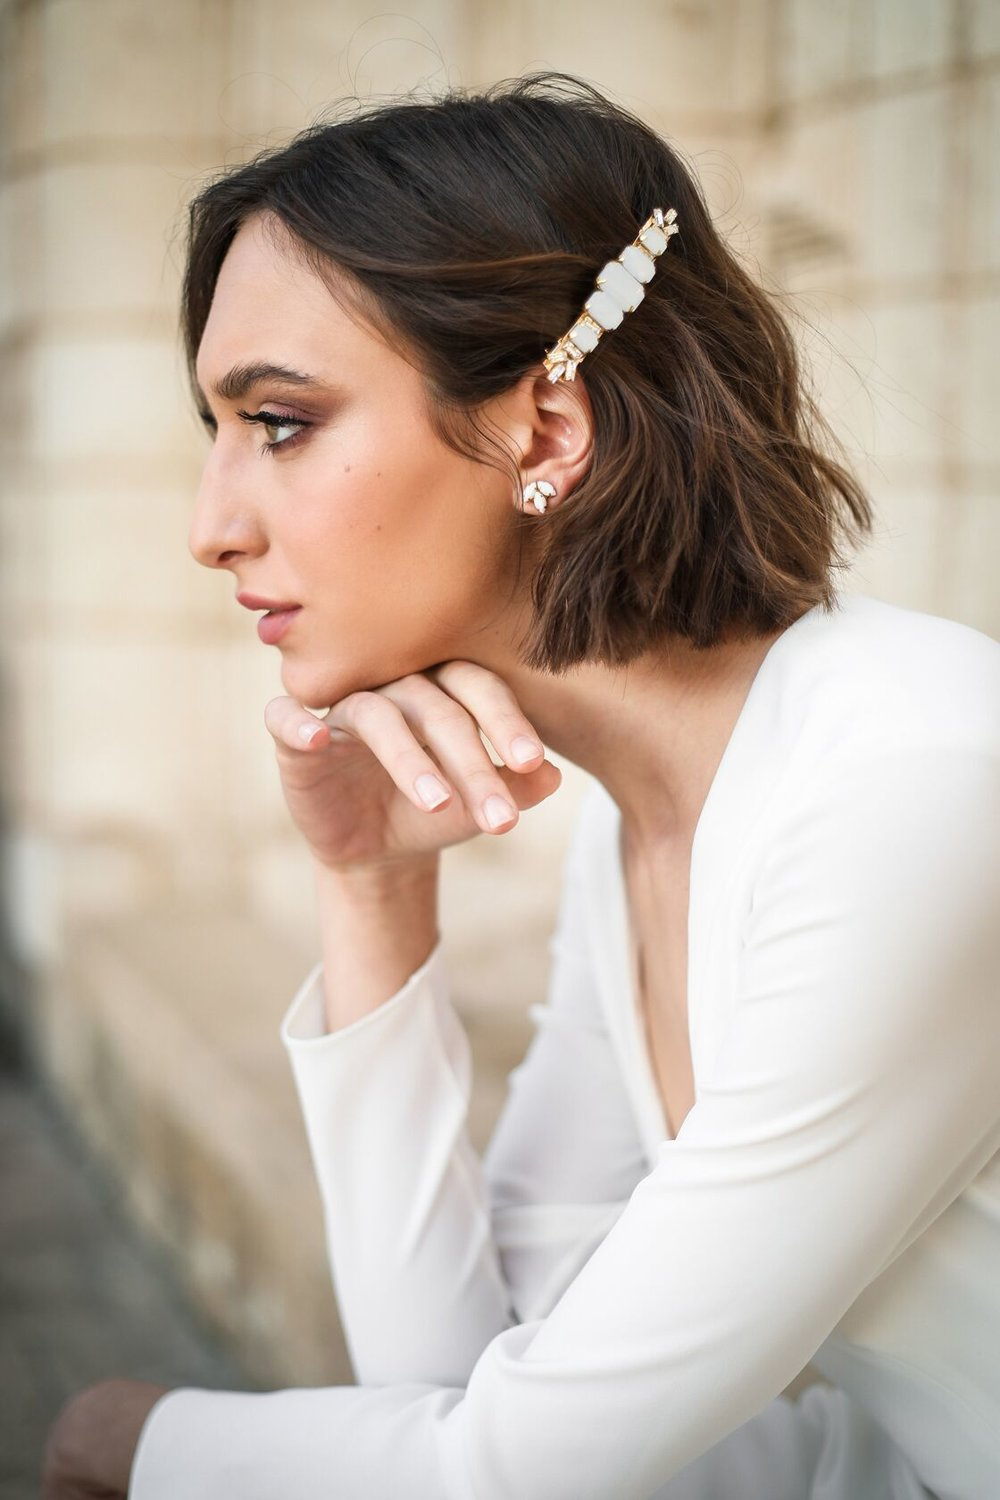 an elegant modern barrette with white rhinestones and gold plus matching stud earrings for a modern bride